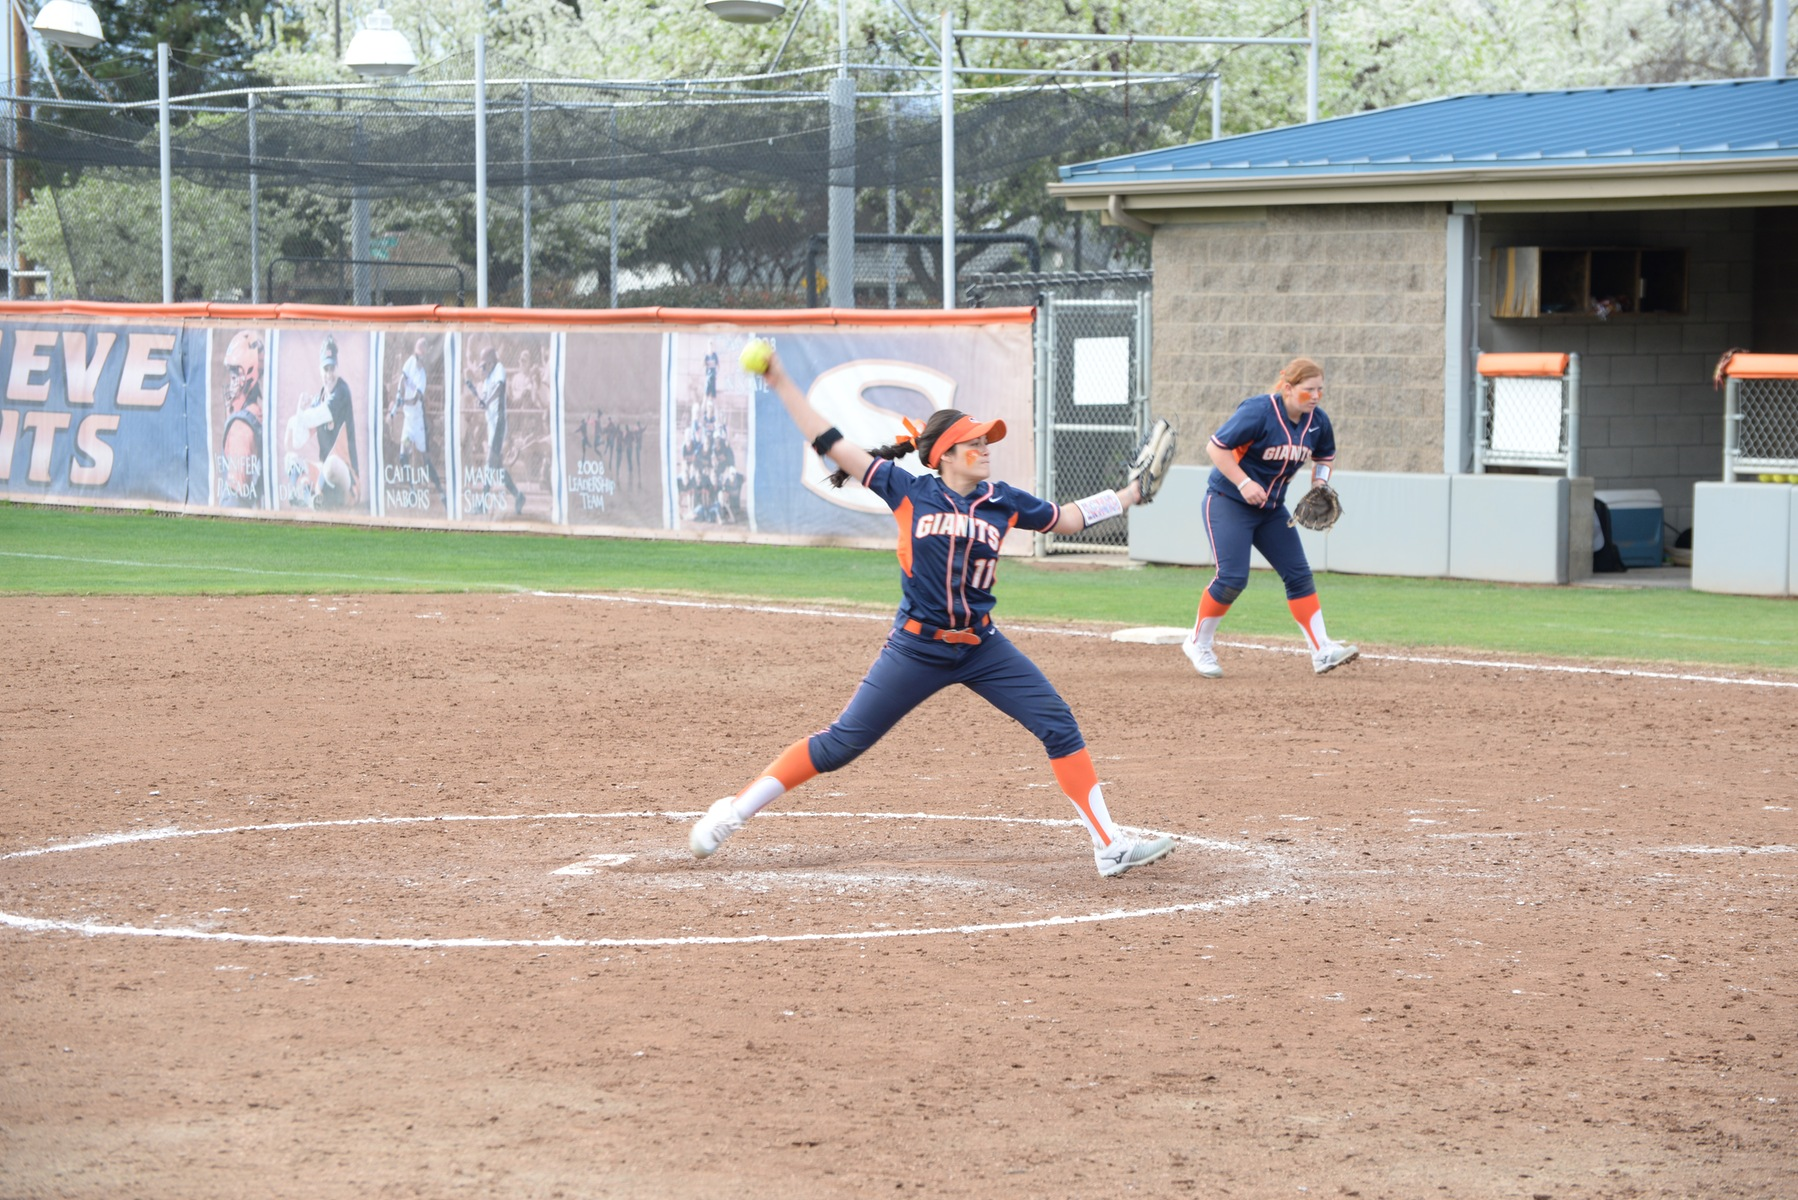 COS bounce back with a victory over West Hills